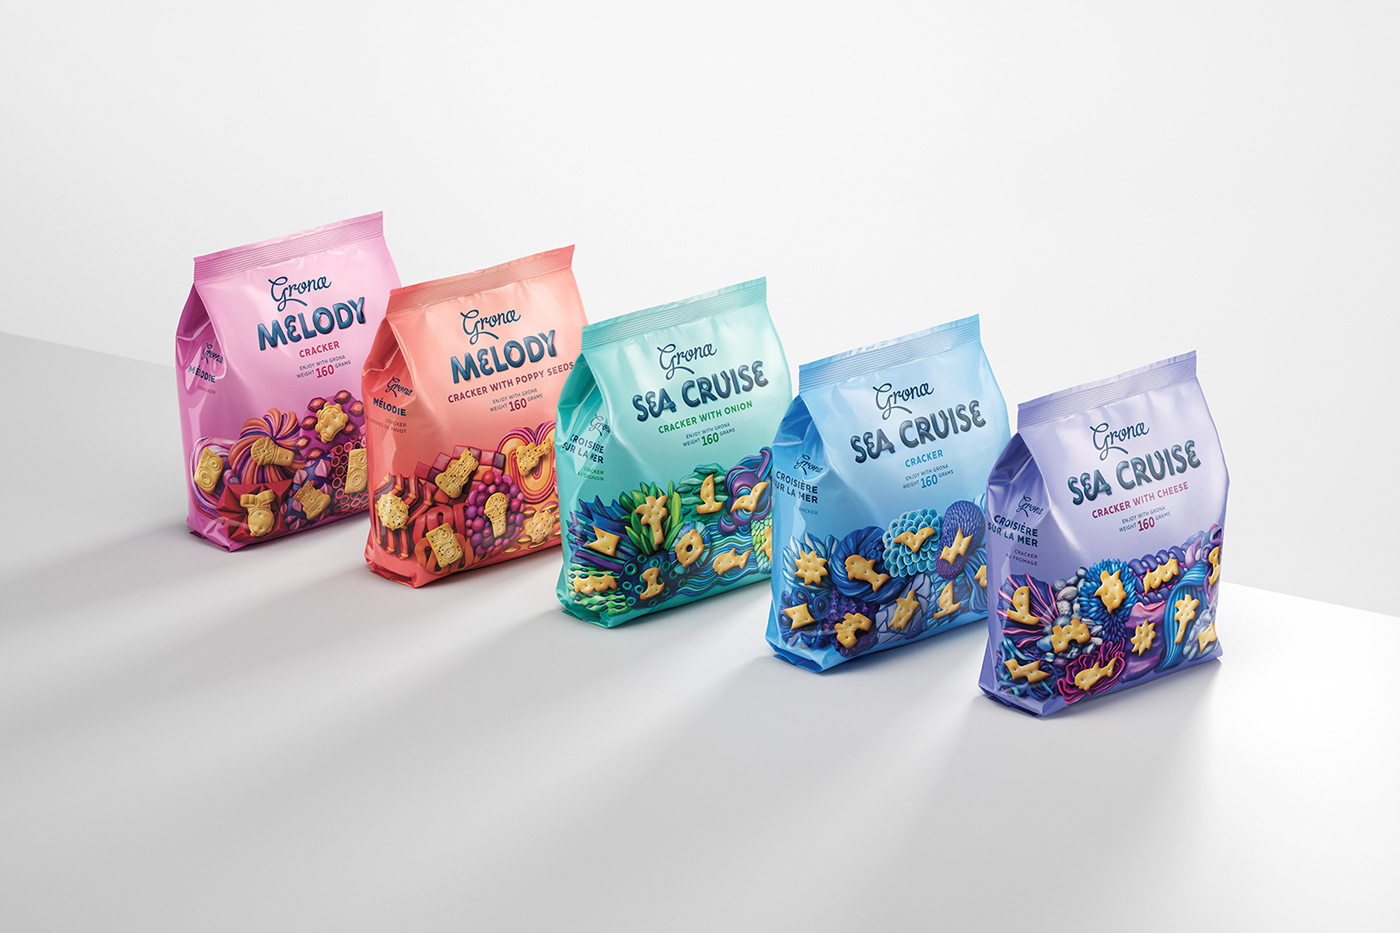 Global Concept for Savory Snack Crackers Product Range / World Brand & Packaging Design Society